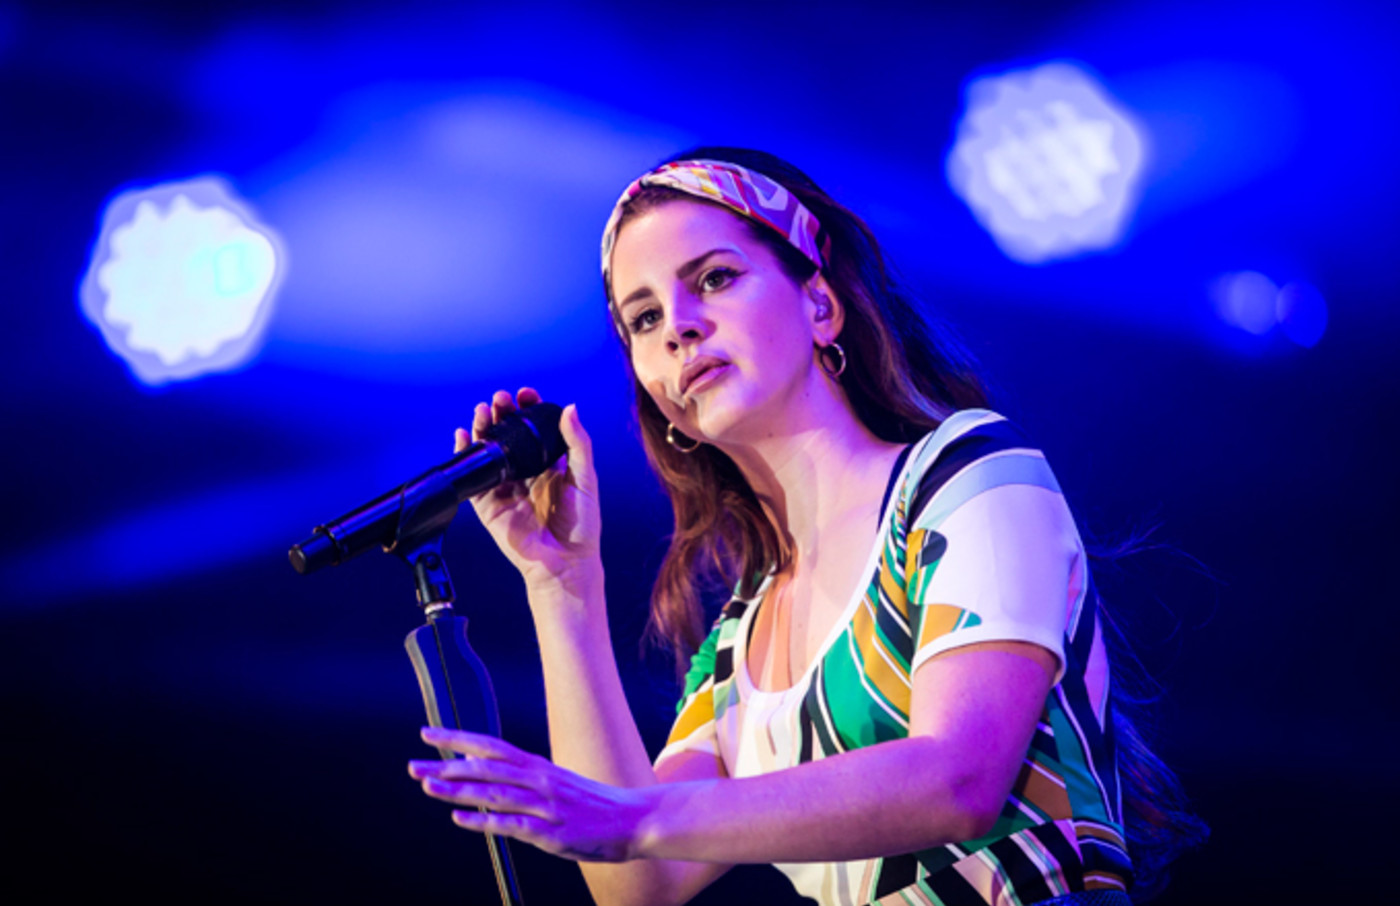 Why Lana Del Rey And Hip Hop Make For A Natural Pairing Complex